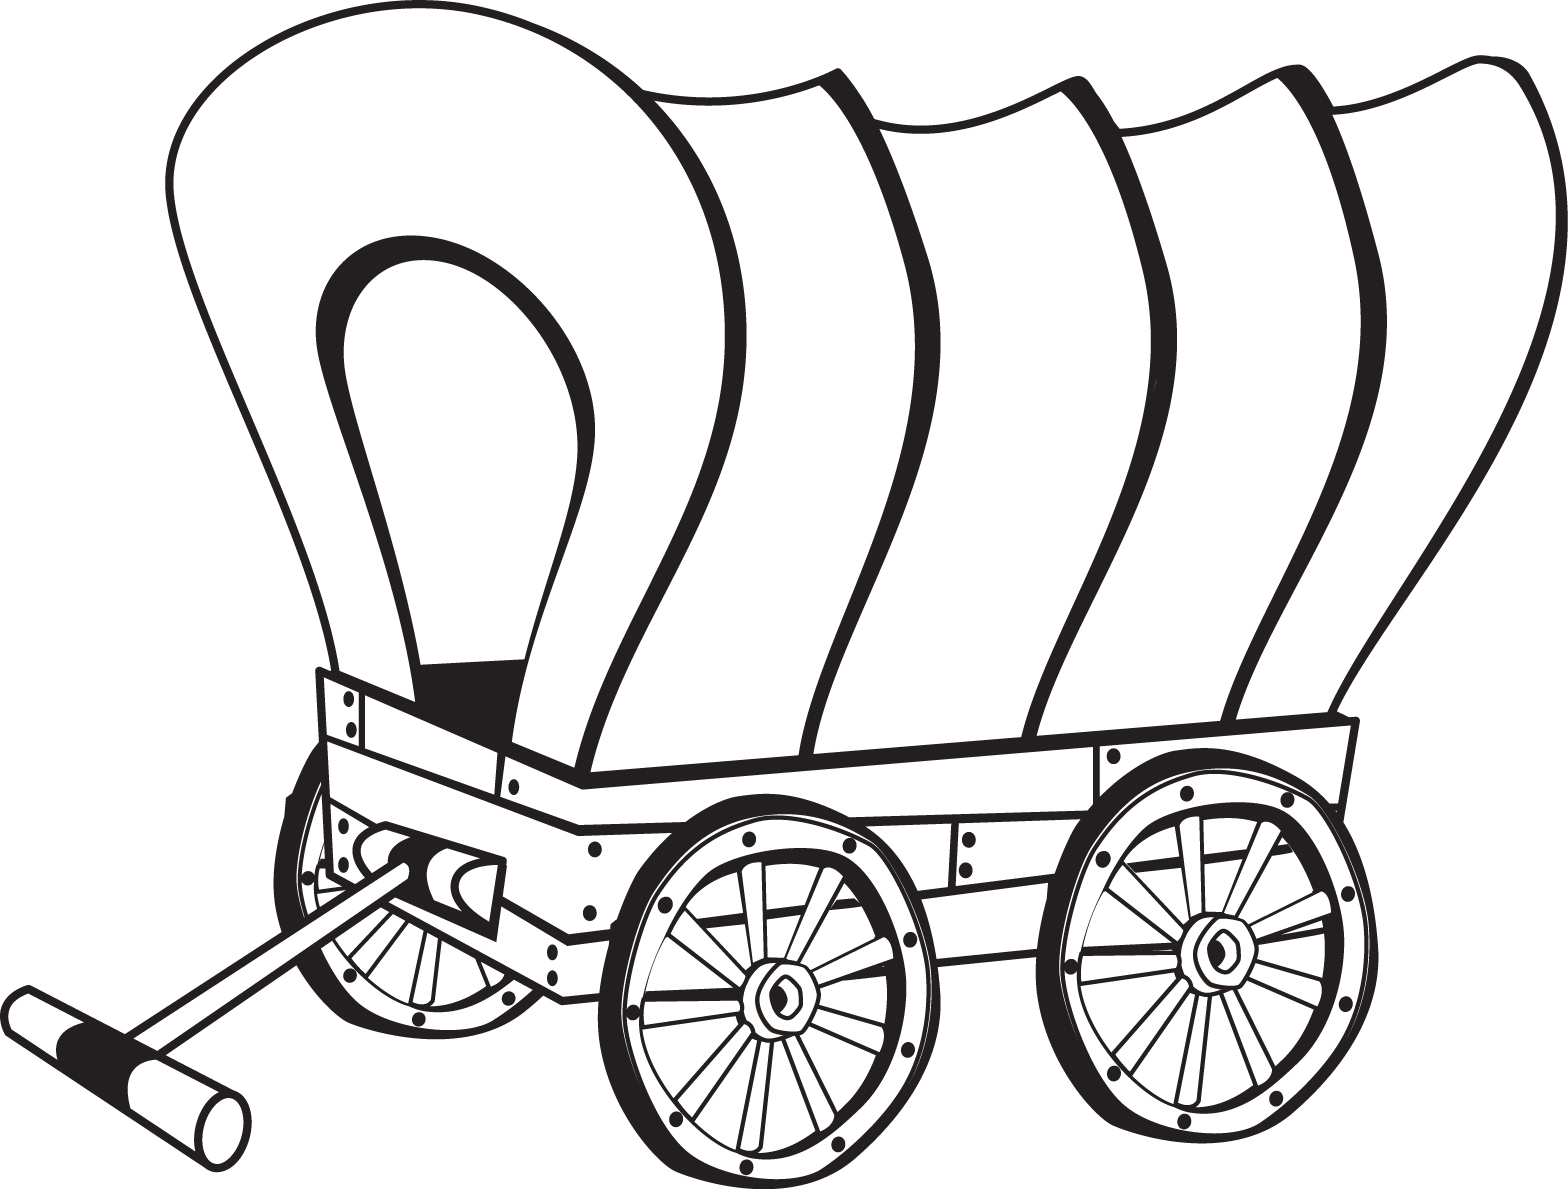 Covered Wagon Coloring Page | Pioneer Unit | Pinterest | Covered ...